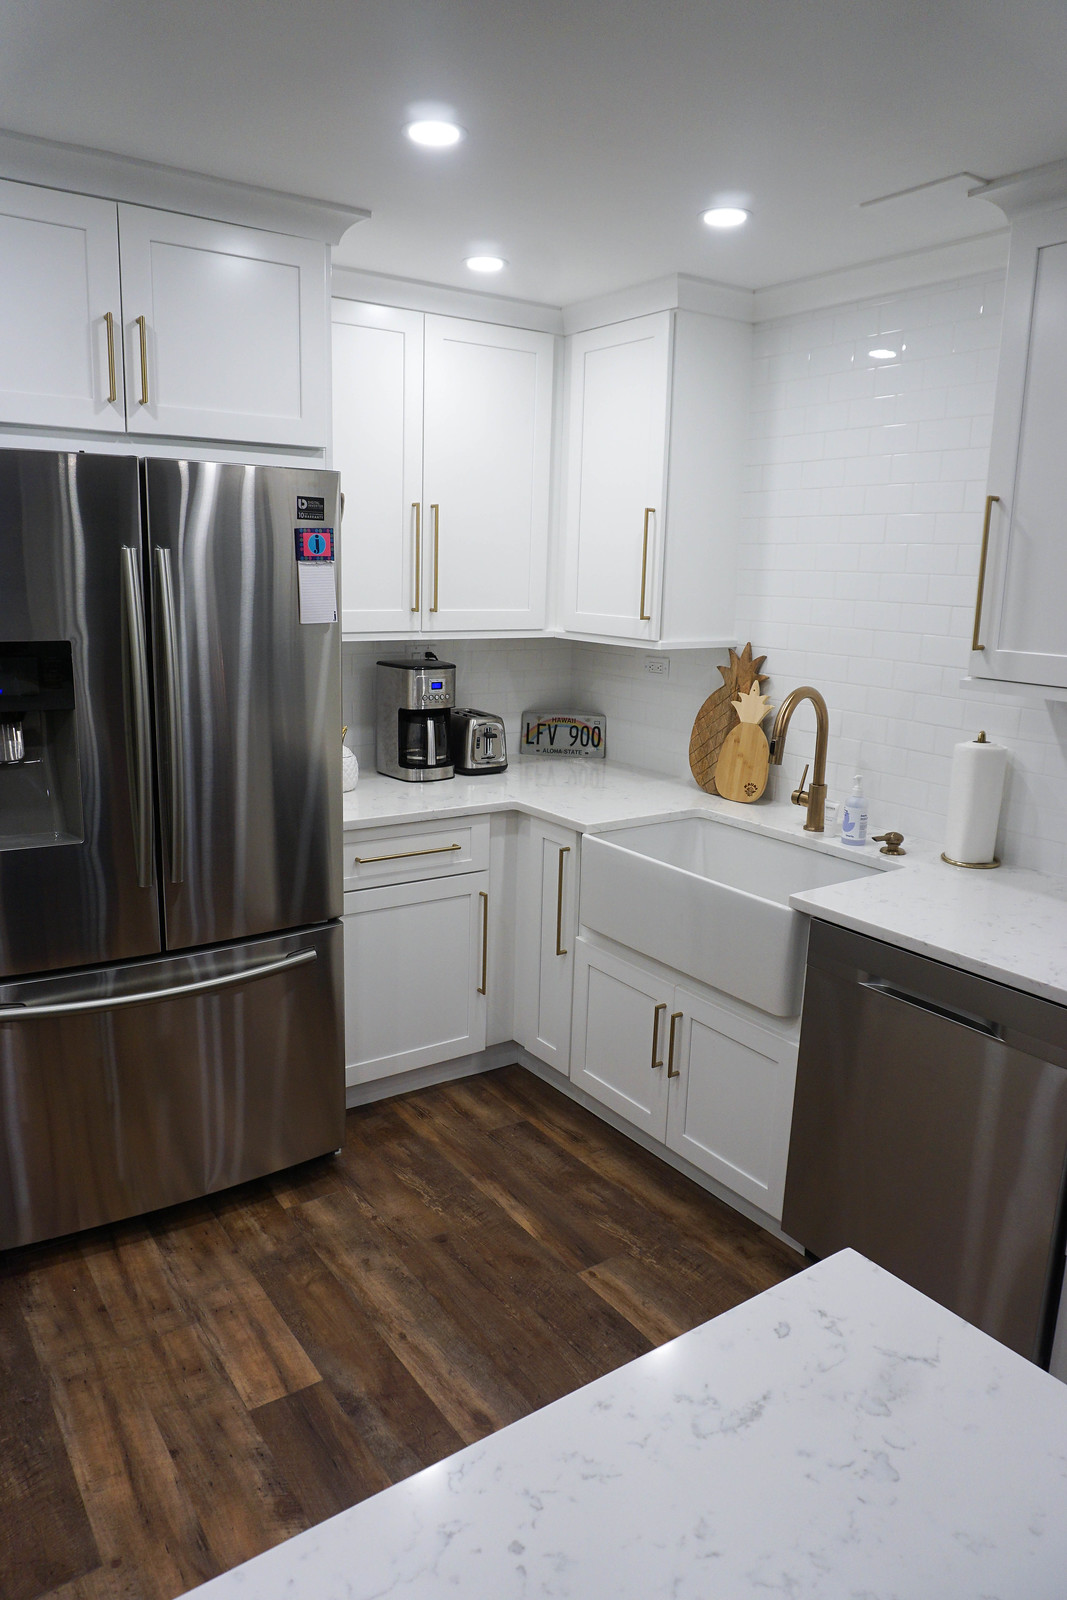 Stainless Steel Appliances White Farmhouse Sink White Cabinets Top Knobs Honey Bronze Handles